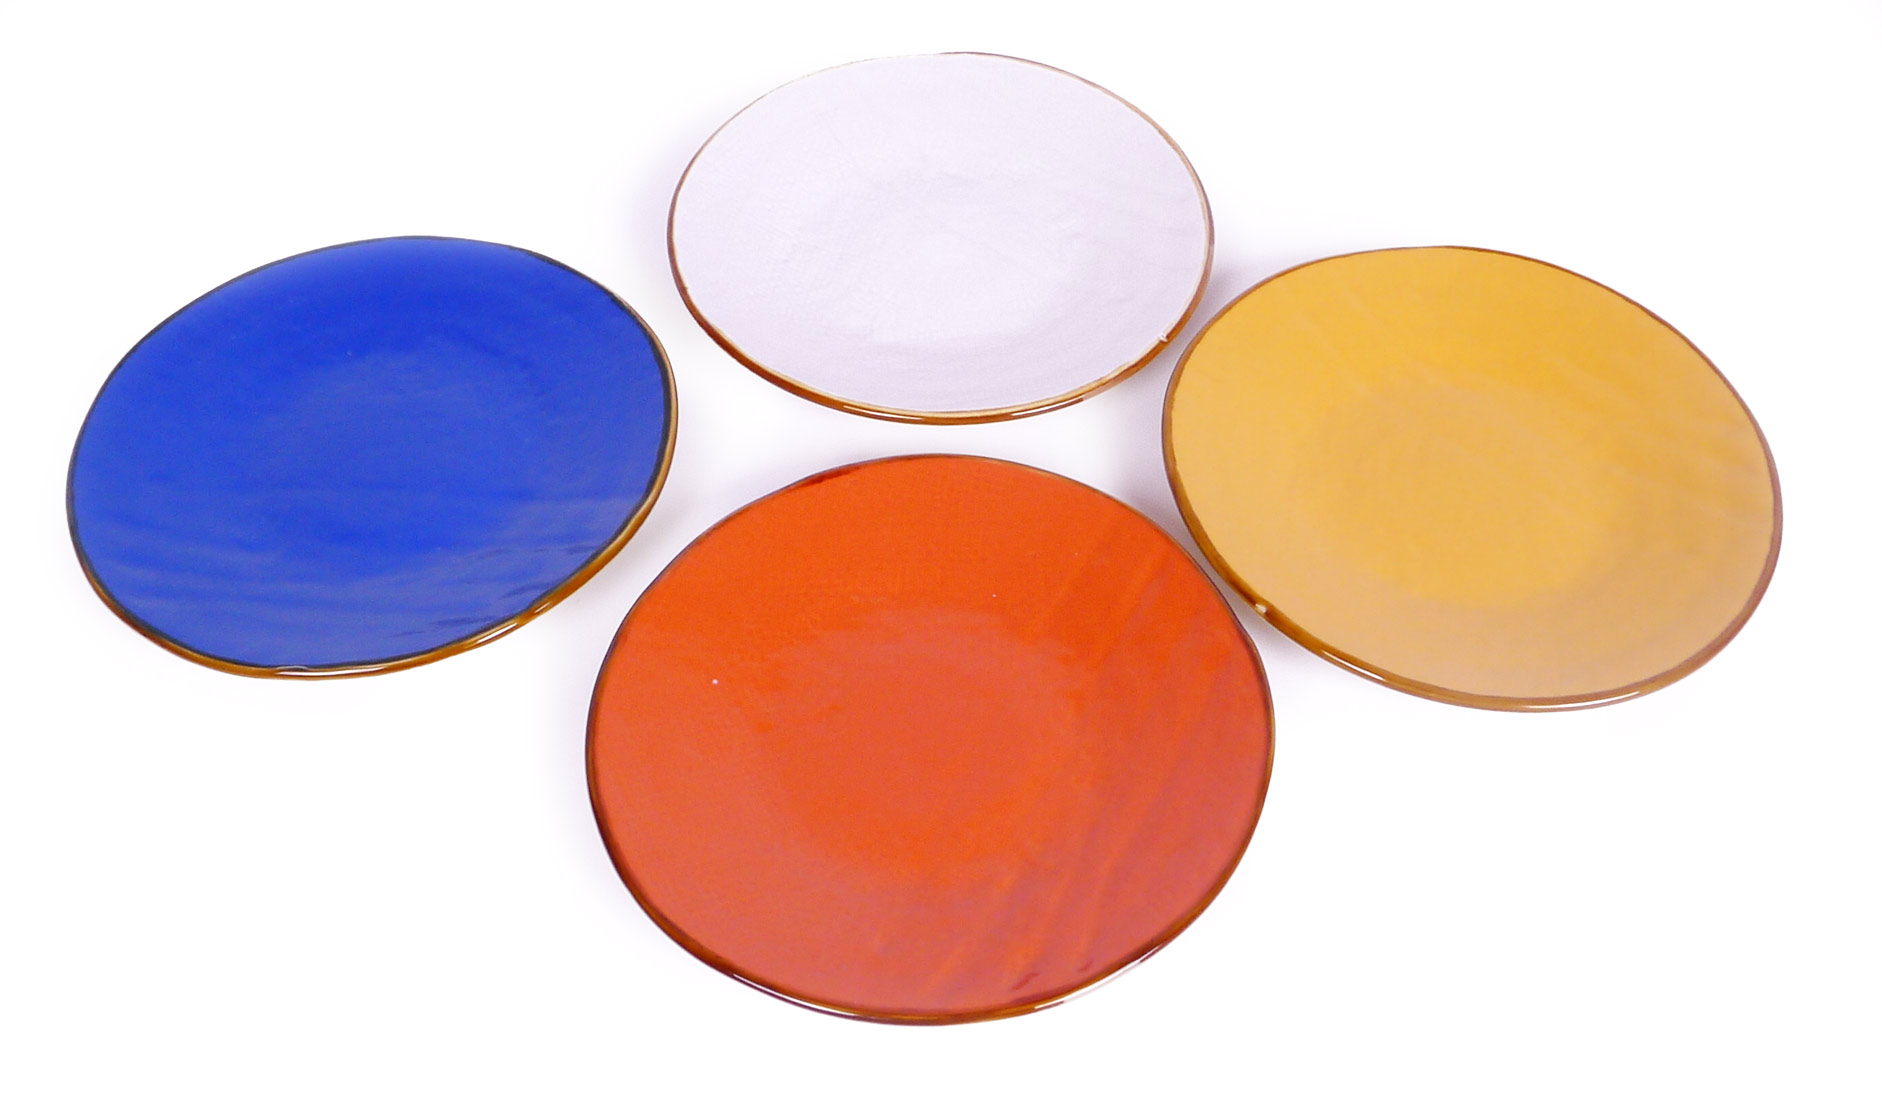 Image of Handcrafted Desert Dish Set of 4 - Mix of 4 colors